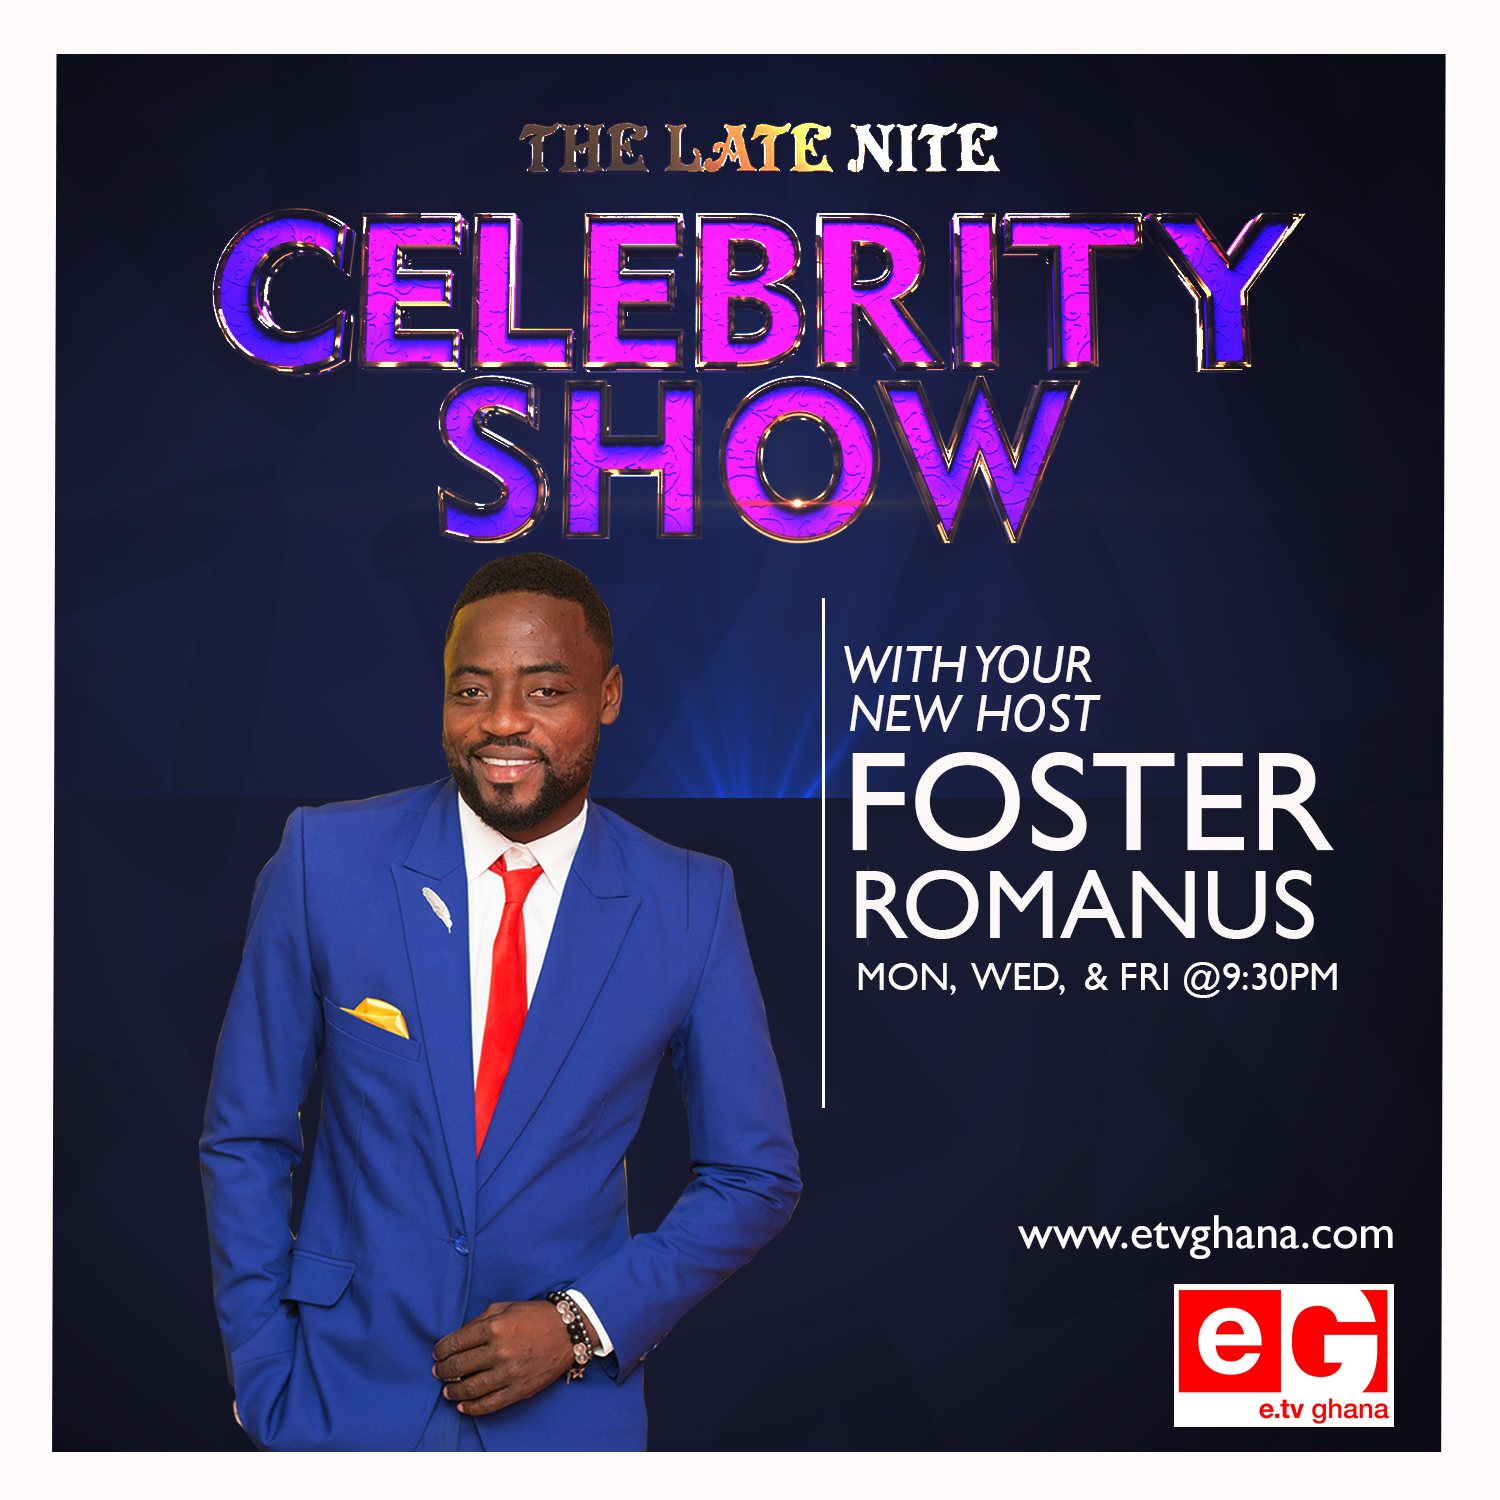 Foster Romanus Takes Over Late Night Celebrity Show